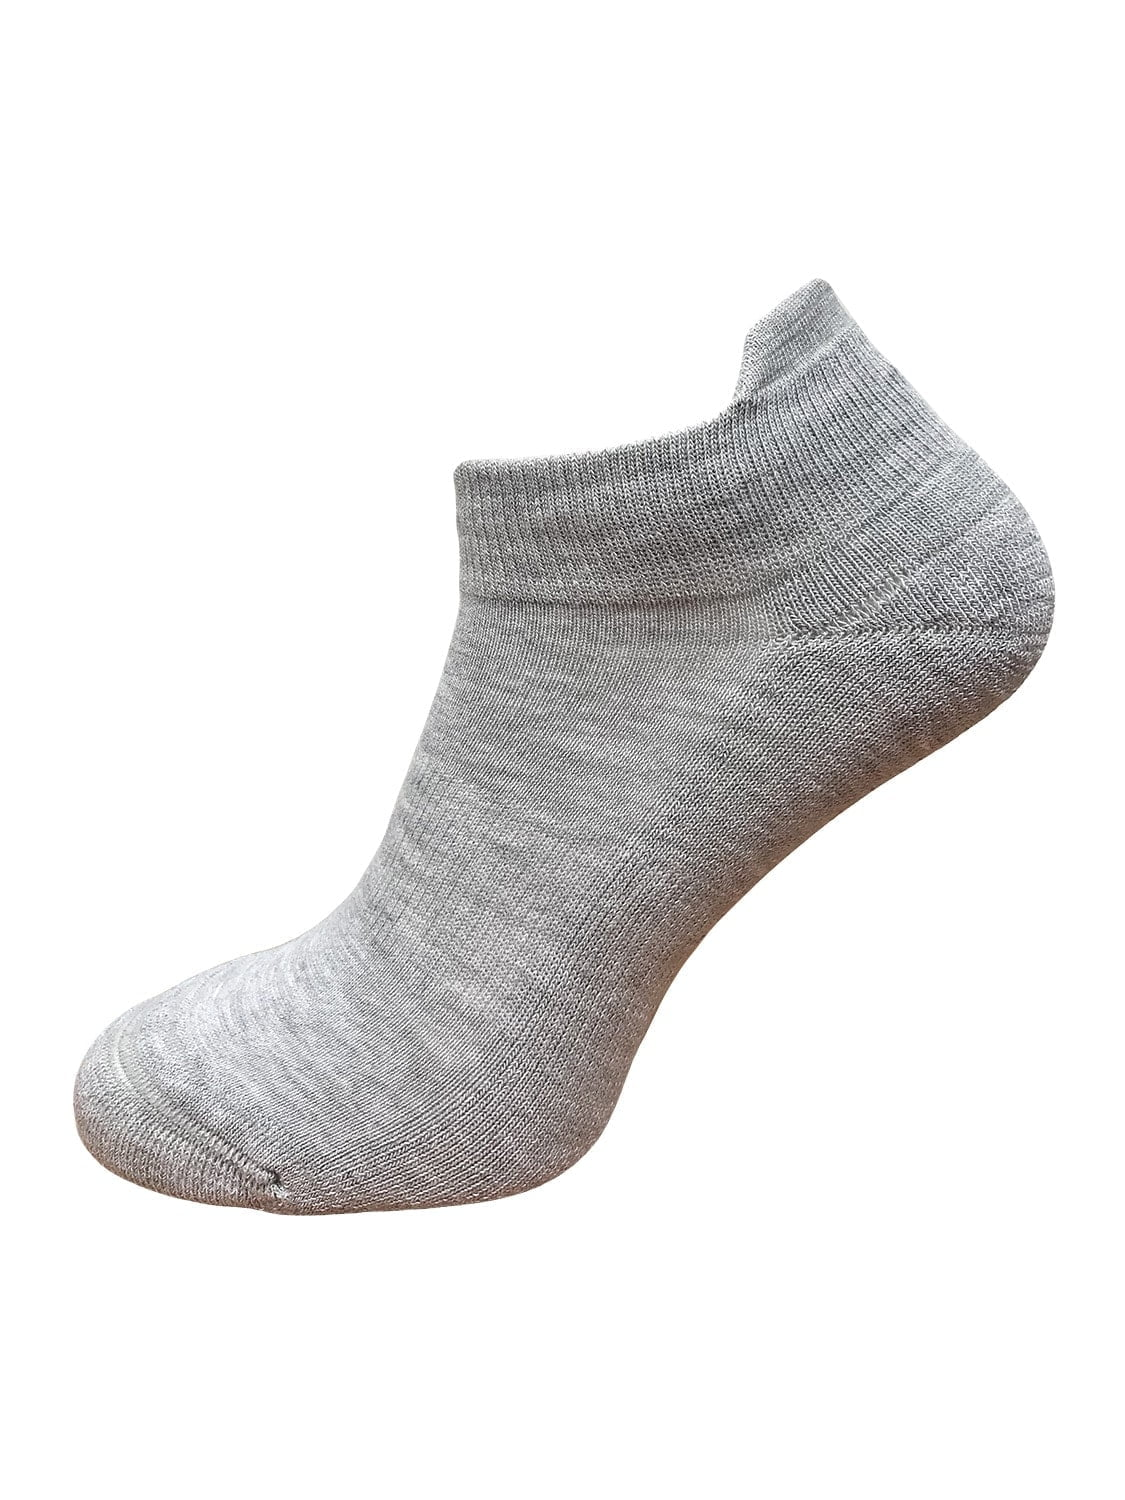 ankle socks with ankle support and protection grey